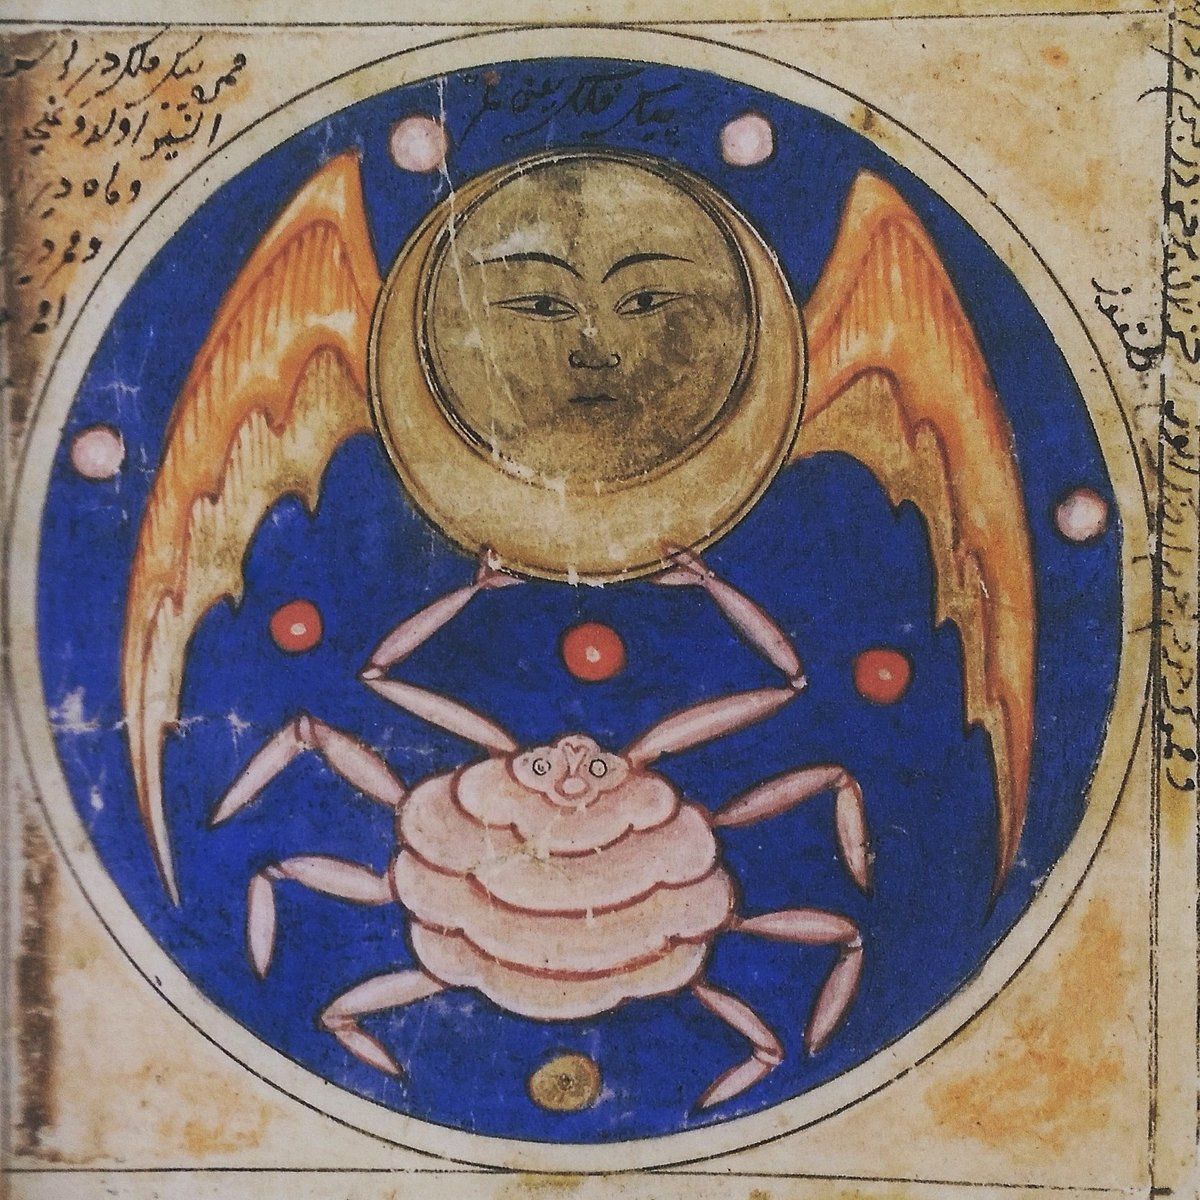 Here's a charming reminder of the #Christmas #Cancer #FullMoon at the magical hour of 11:11 GMT. It's about rebirth https://t.co/Zk8vdFzghM